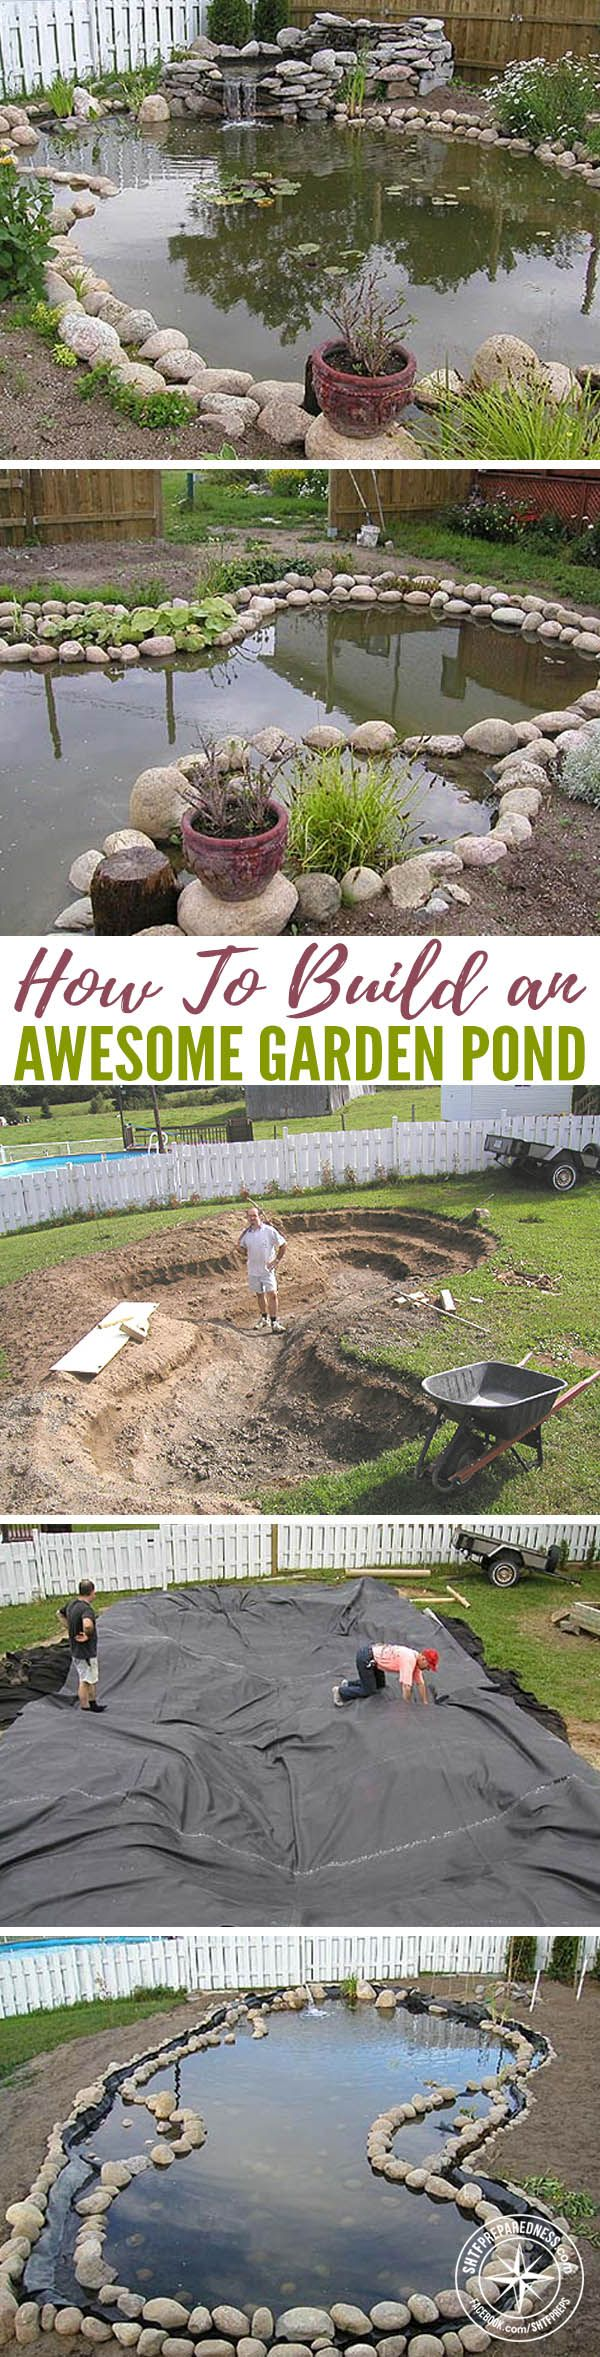 how to build an awesome garden pond garden ponds plants and water